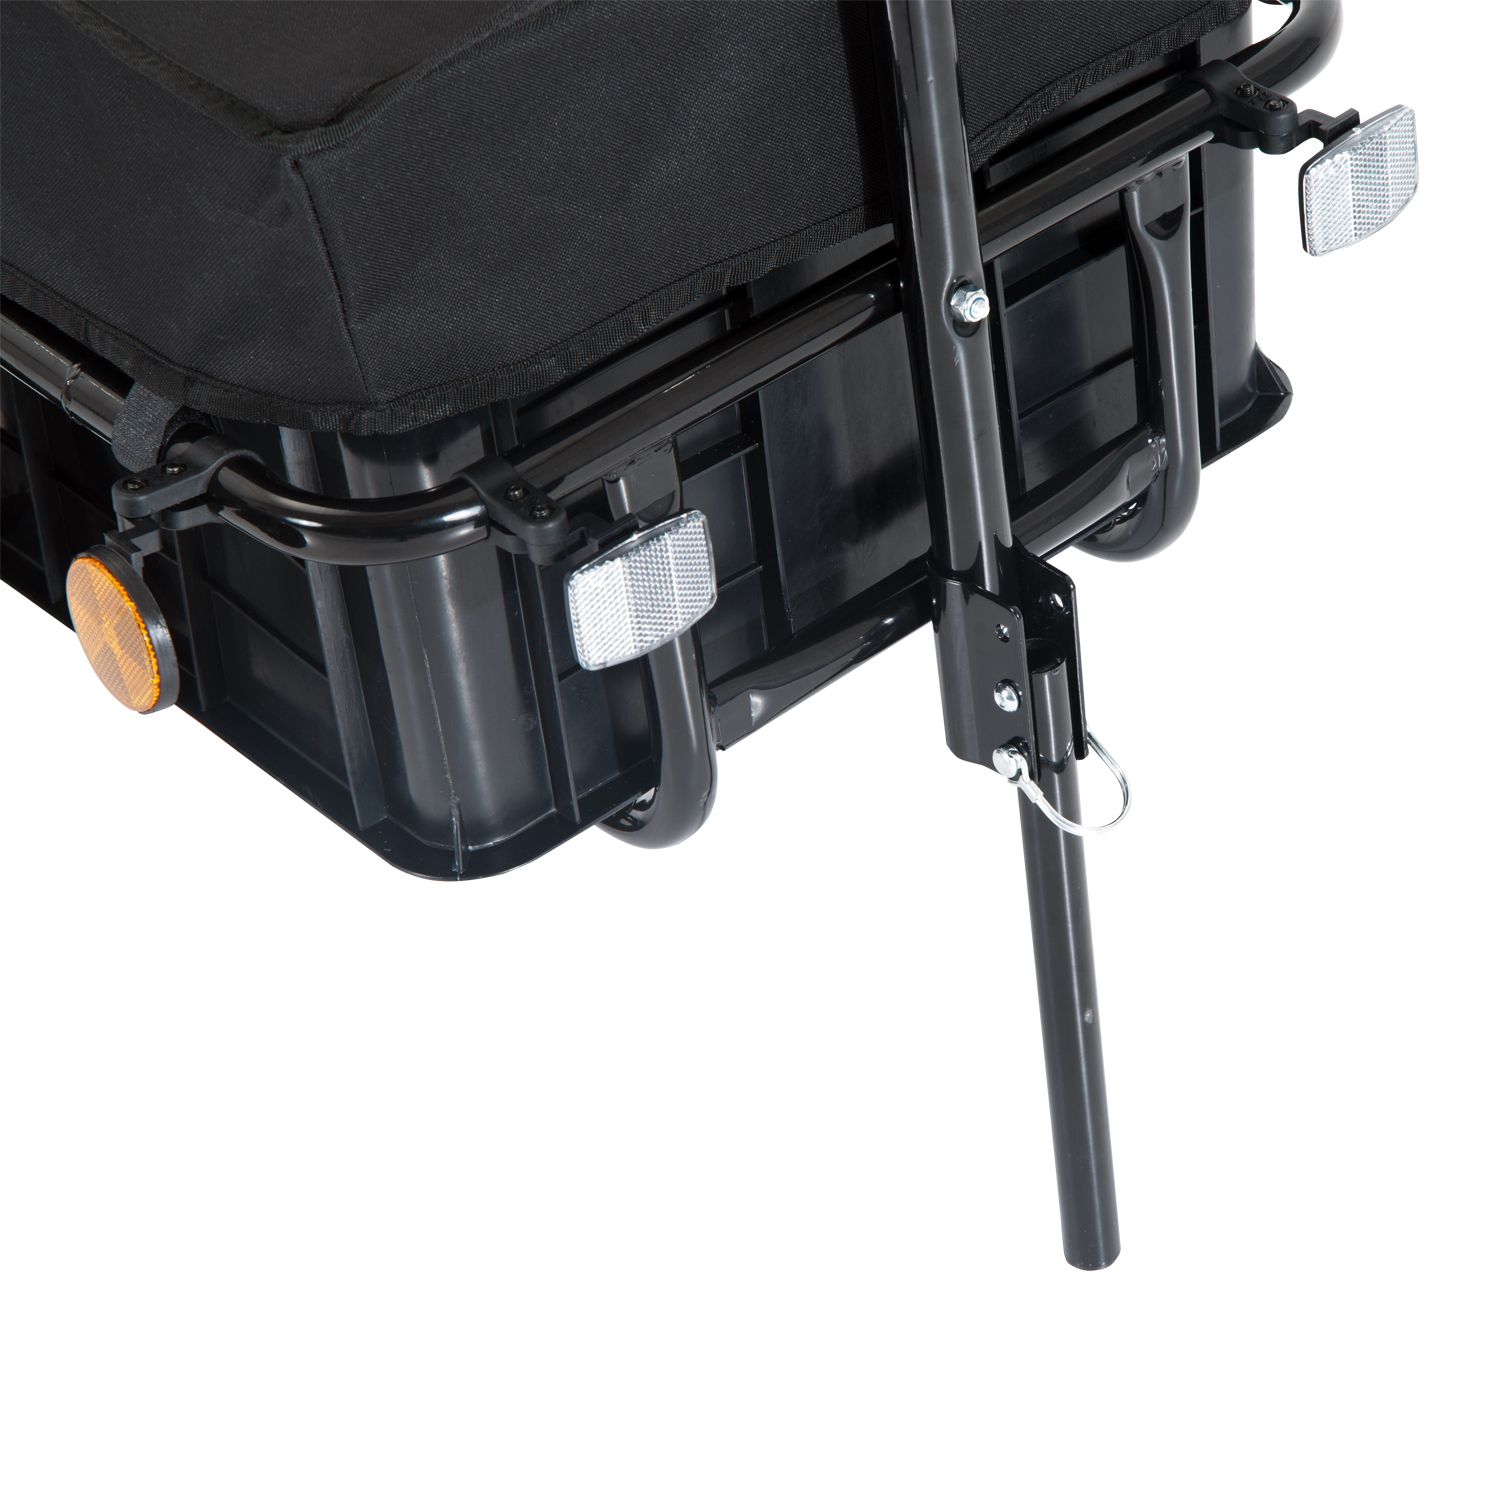 Aosom Enclosed Bicycle Cargo Trailer - Black Aosom Direct B71-005